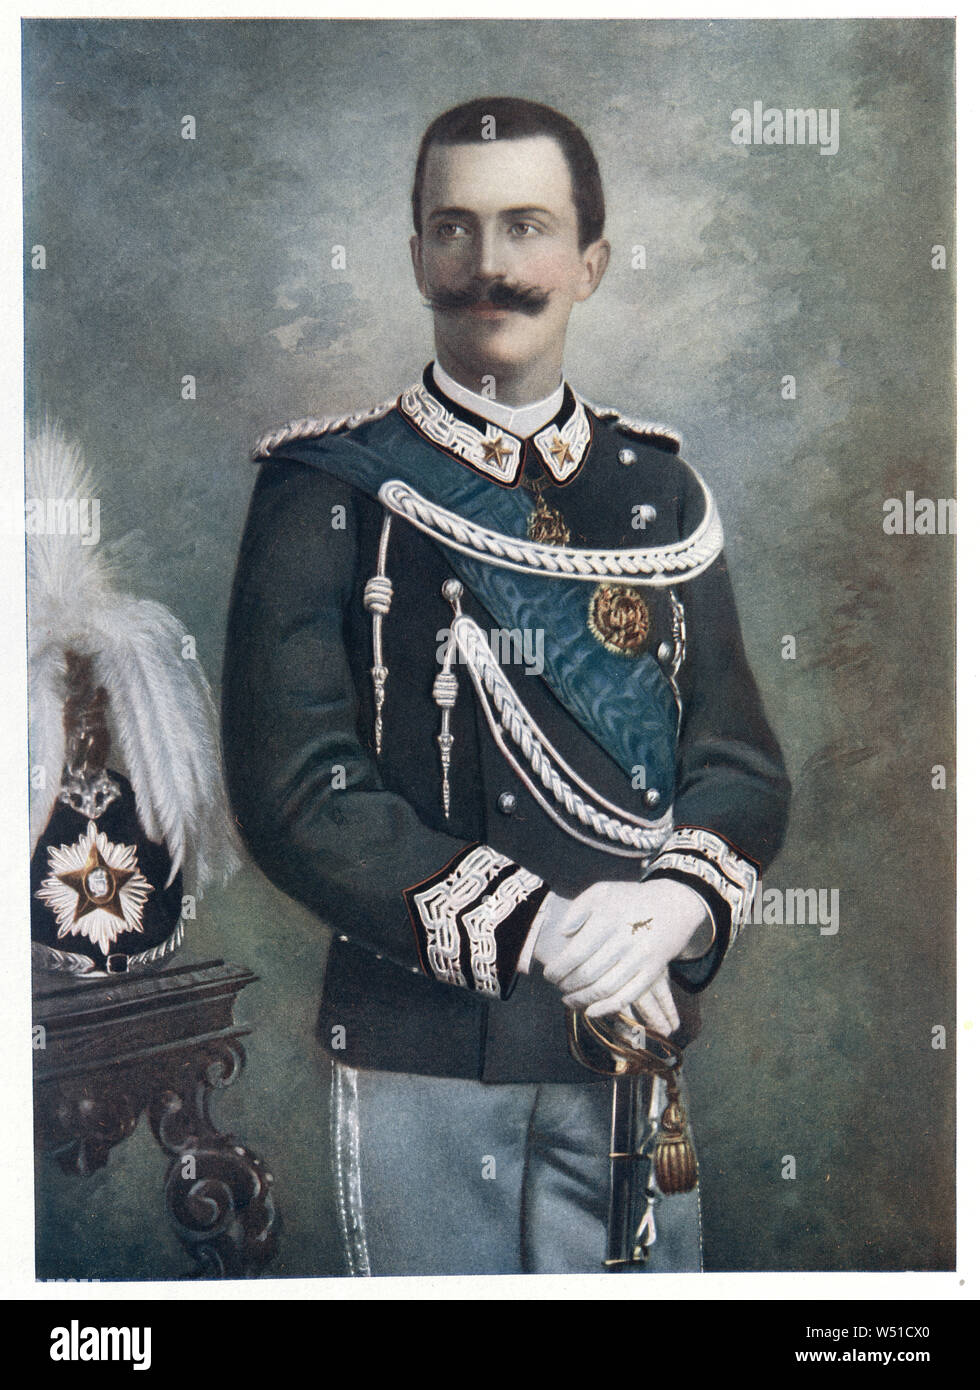 Victor Emmanuel III  was the King of Italy from 29 July 1900 until his abdication on 9 May 1946. Stock Photo